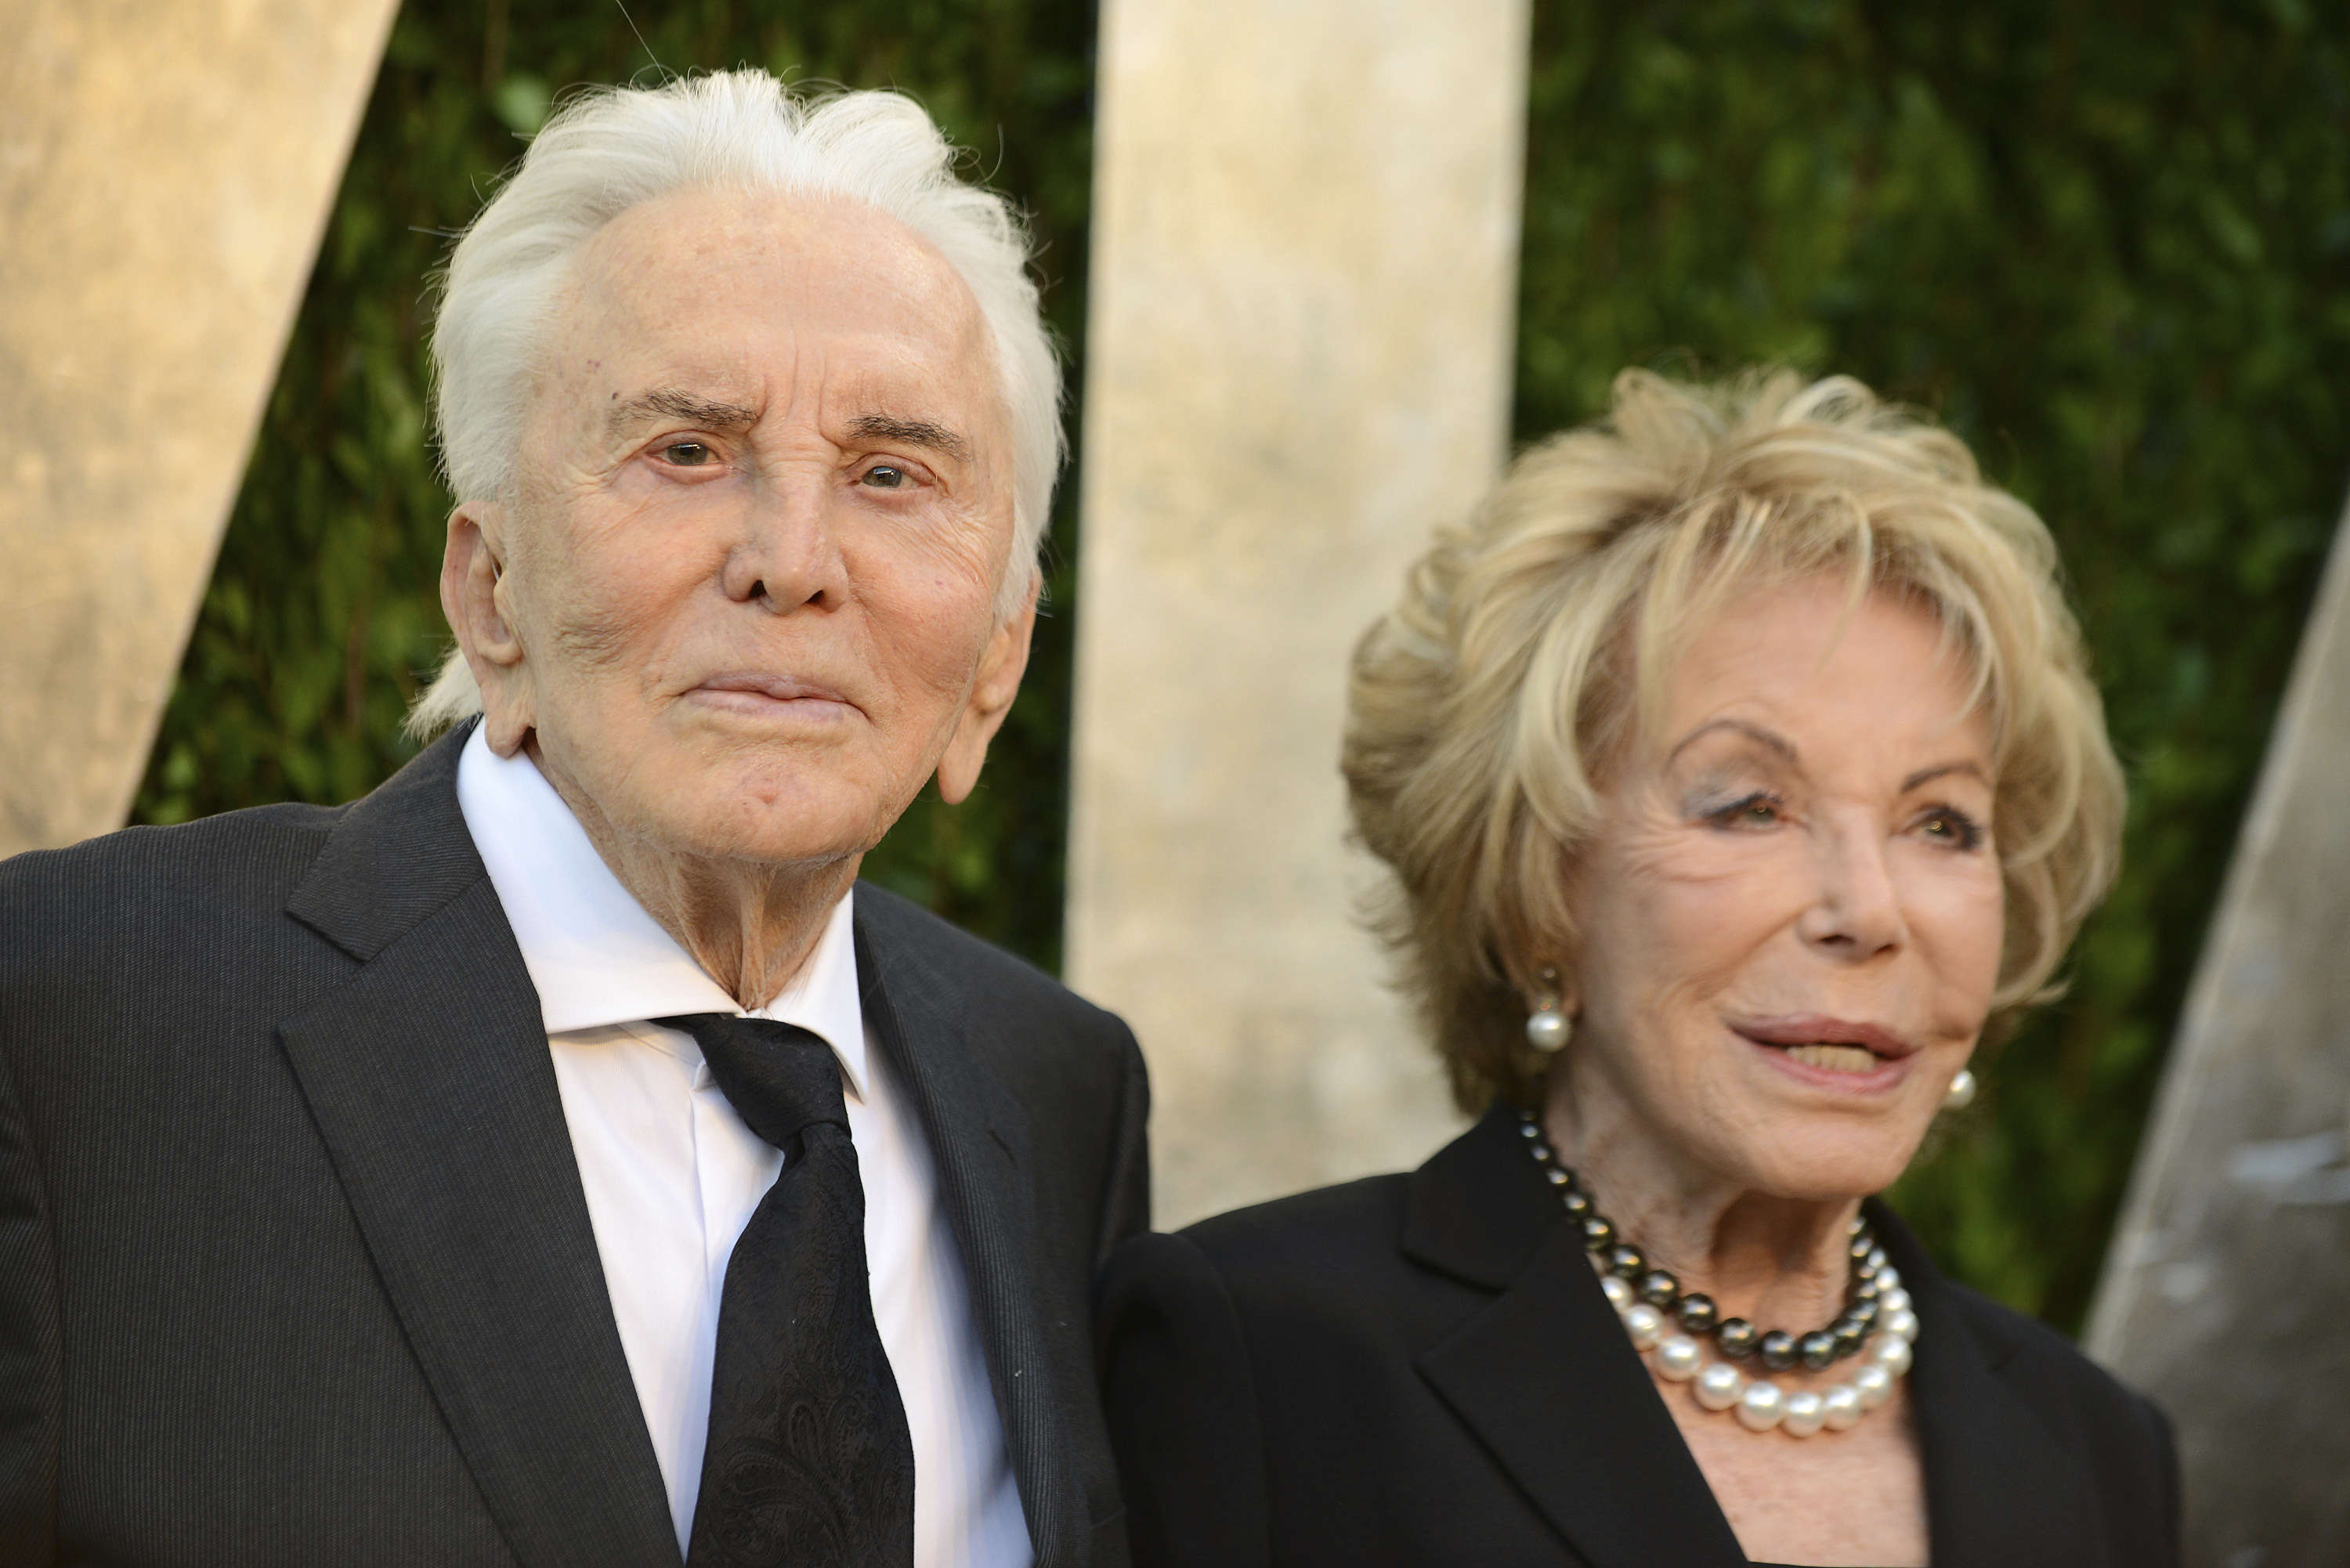 FILE PHOTO: Kirk Douglas (L) and his wife Anne attended the 2013 Vanity Fair Oscars Party in West Hollywood.